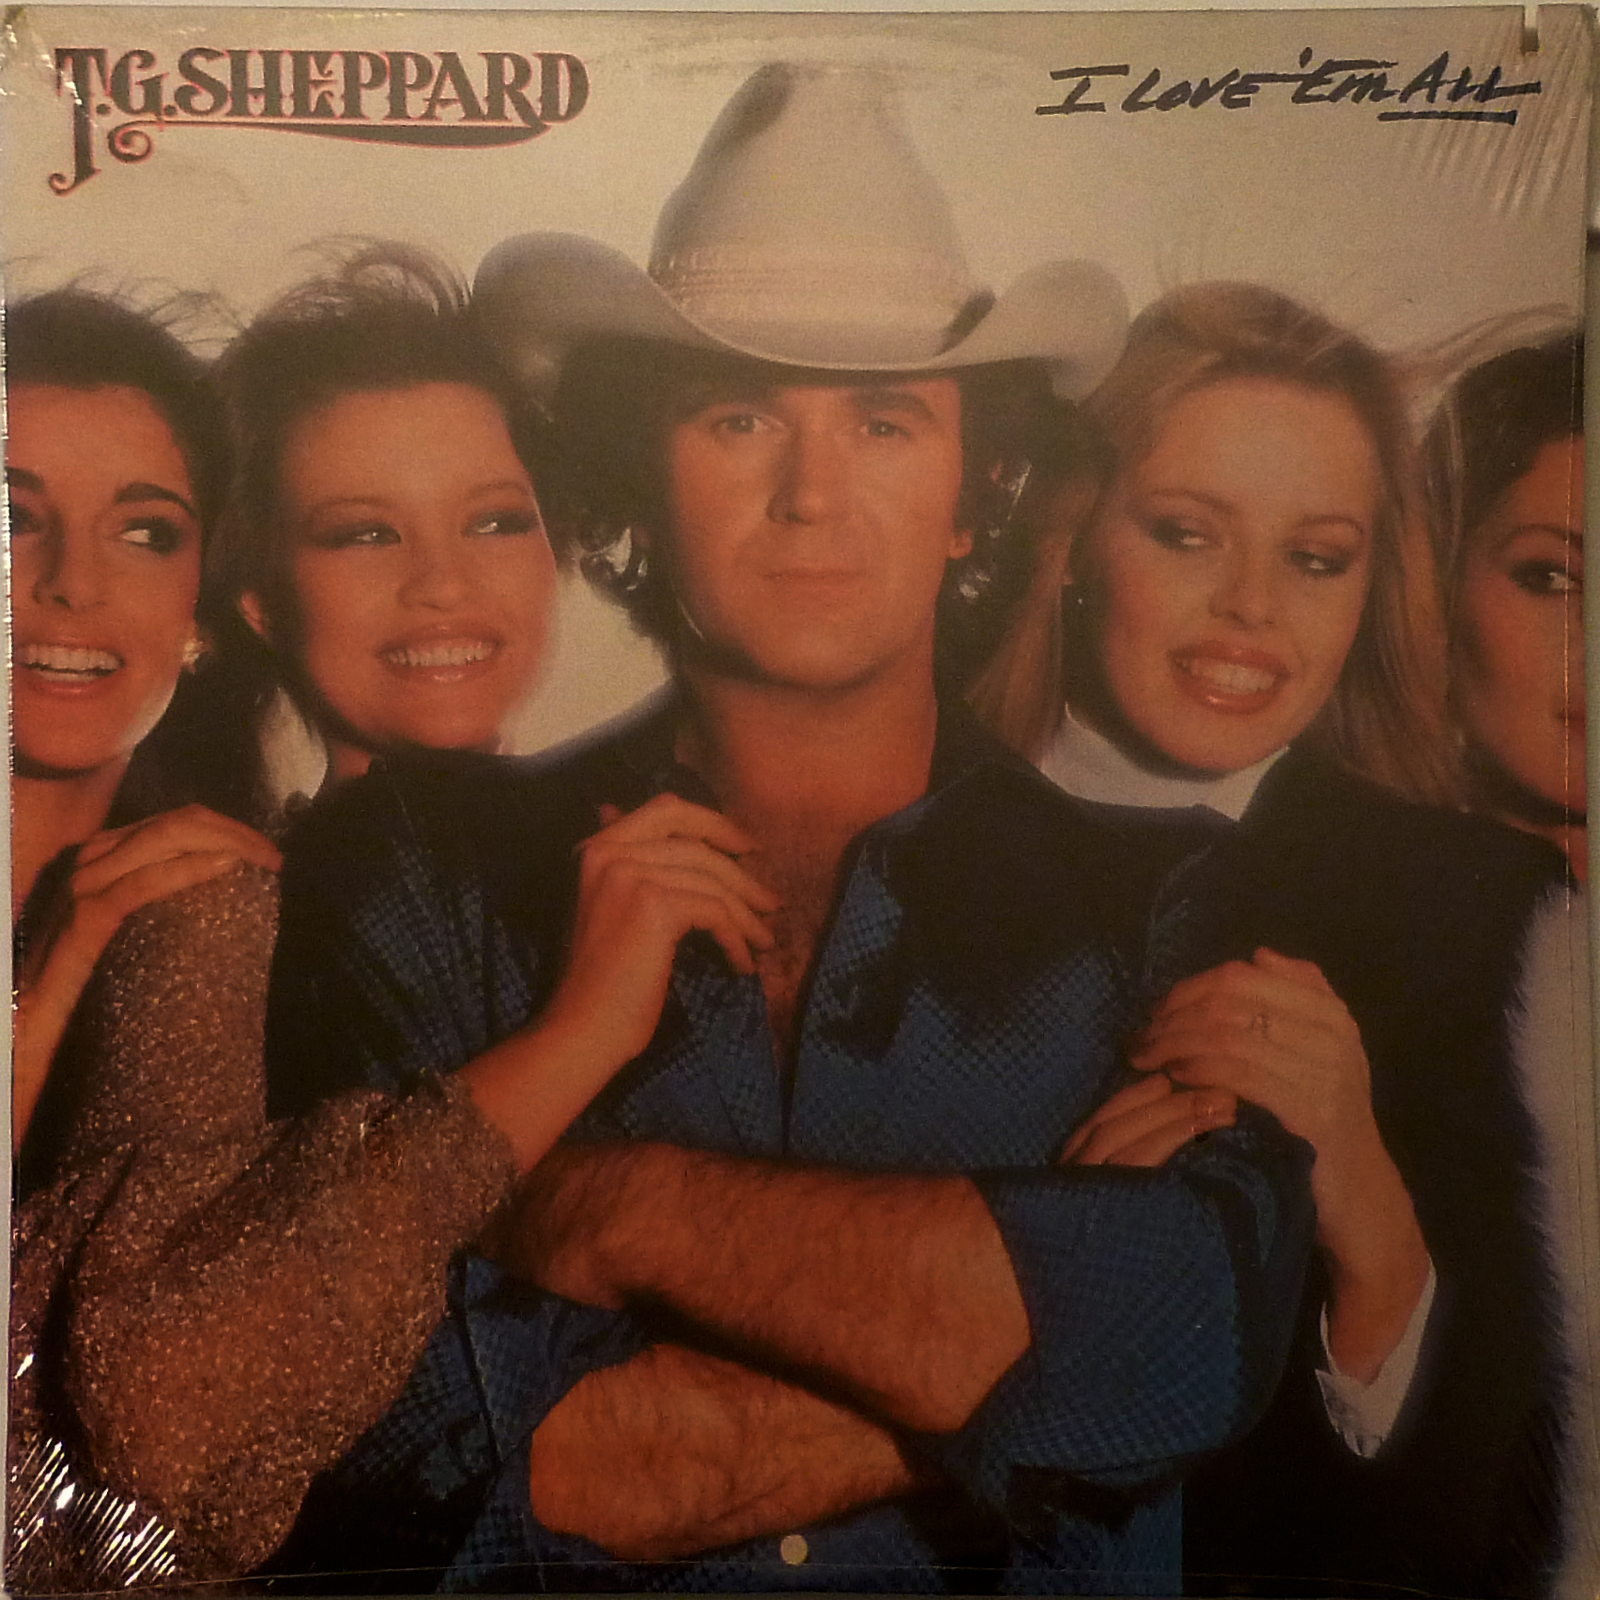 T.G. SHEPPARD I Love 'Em All LP